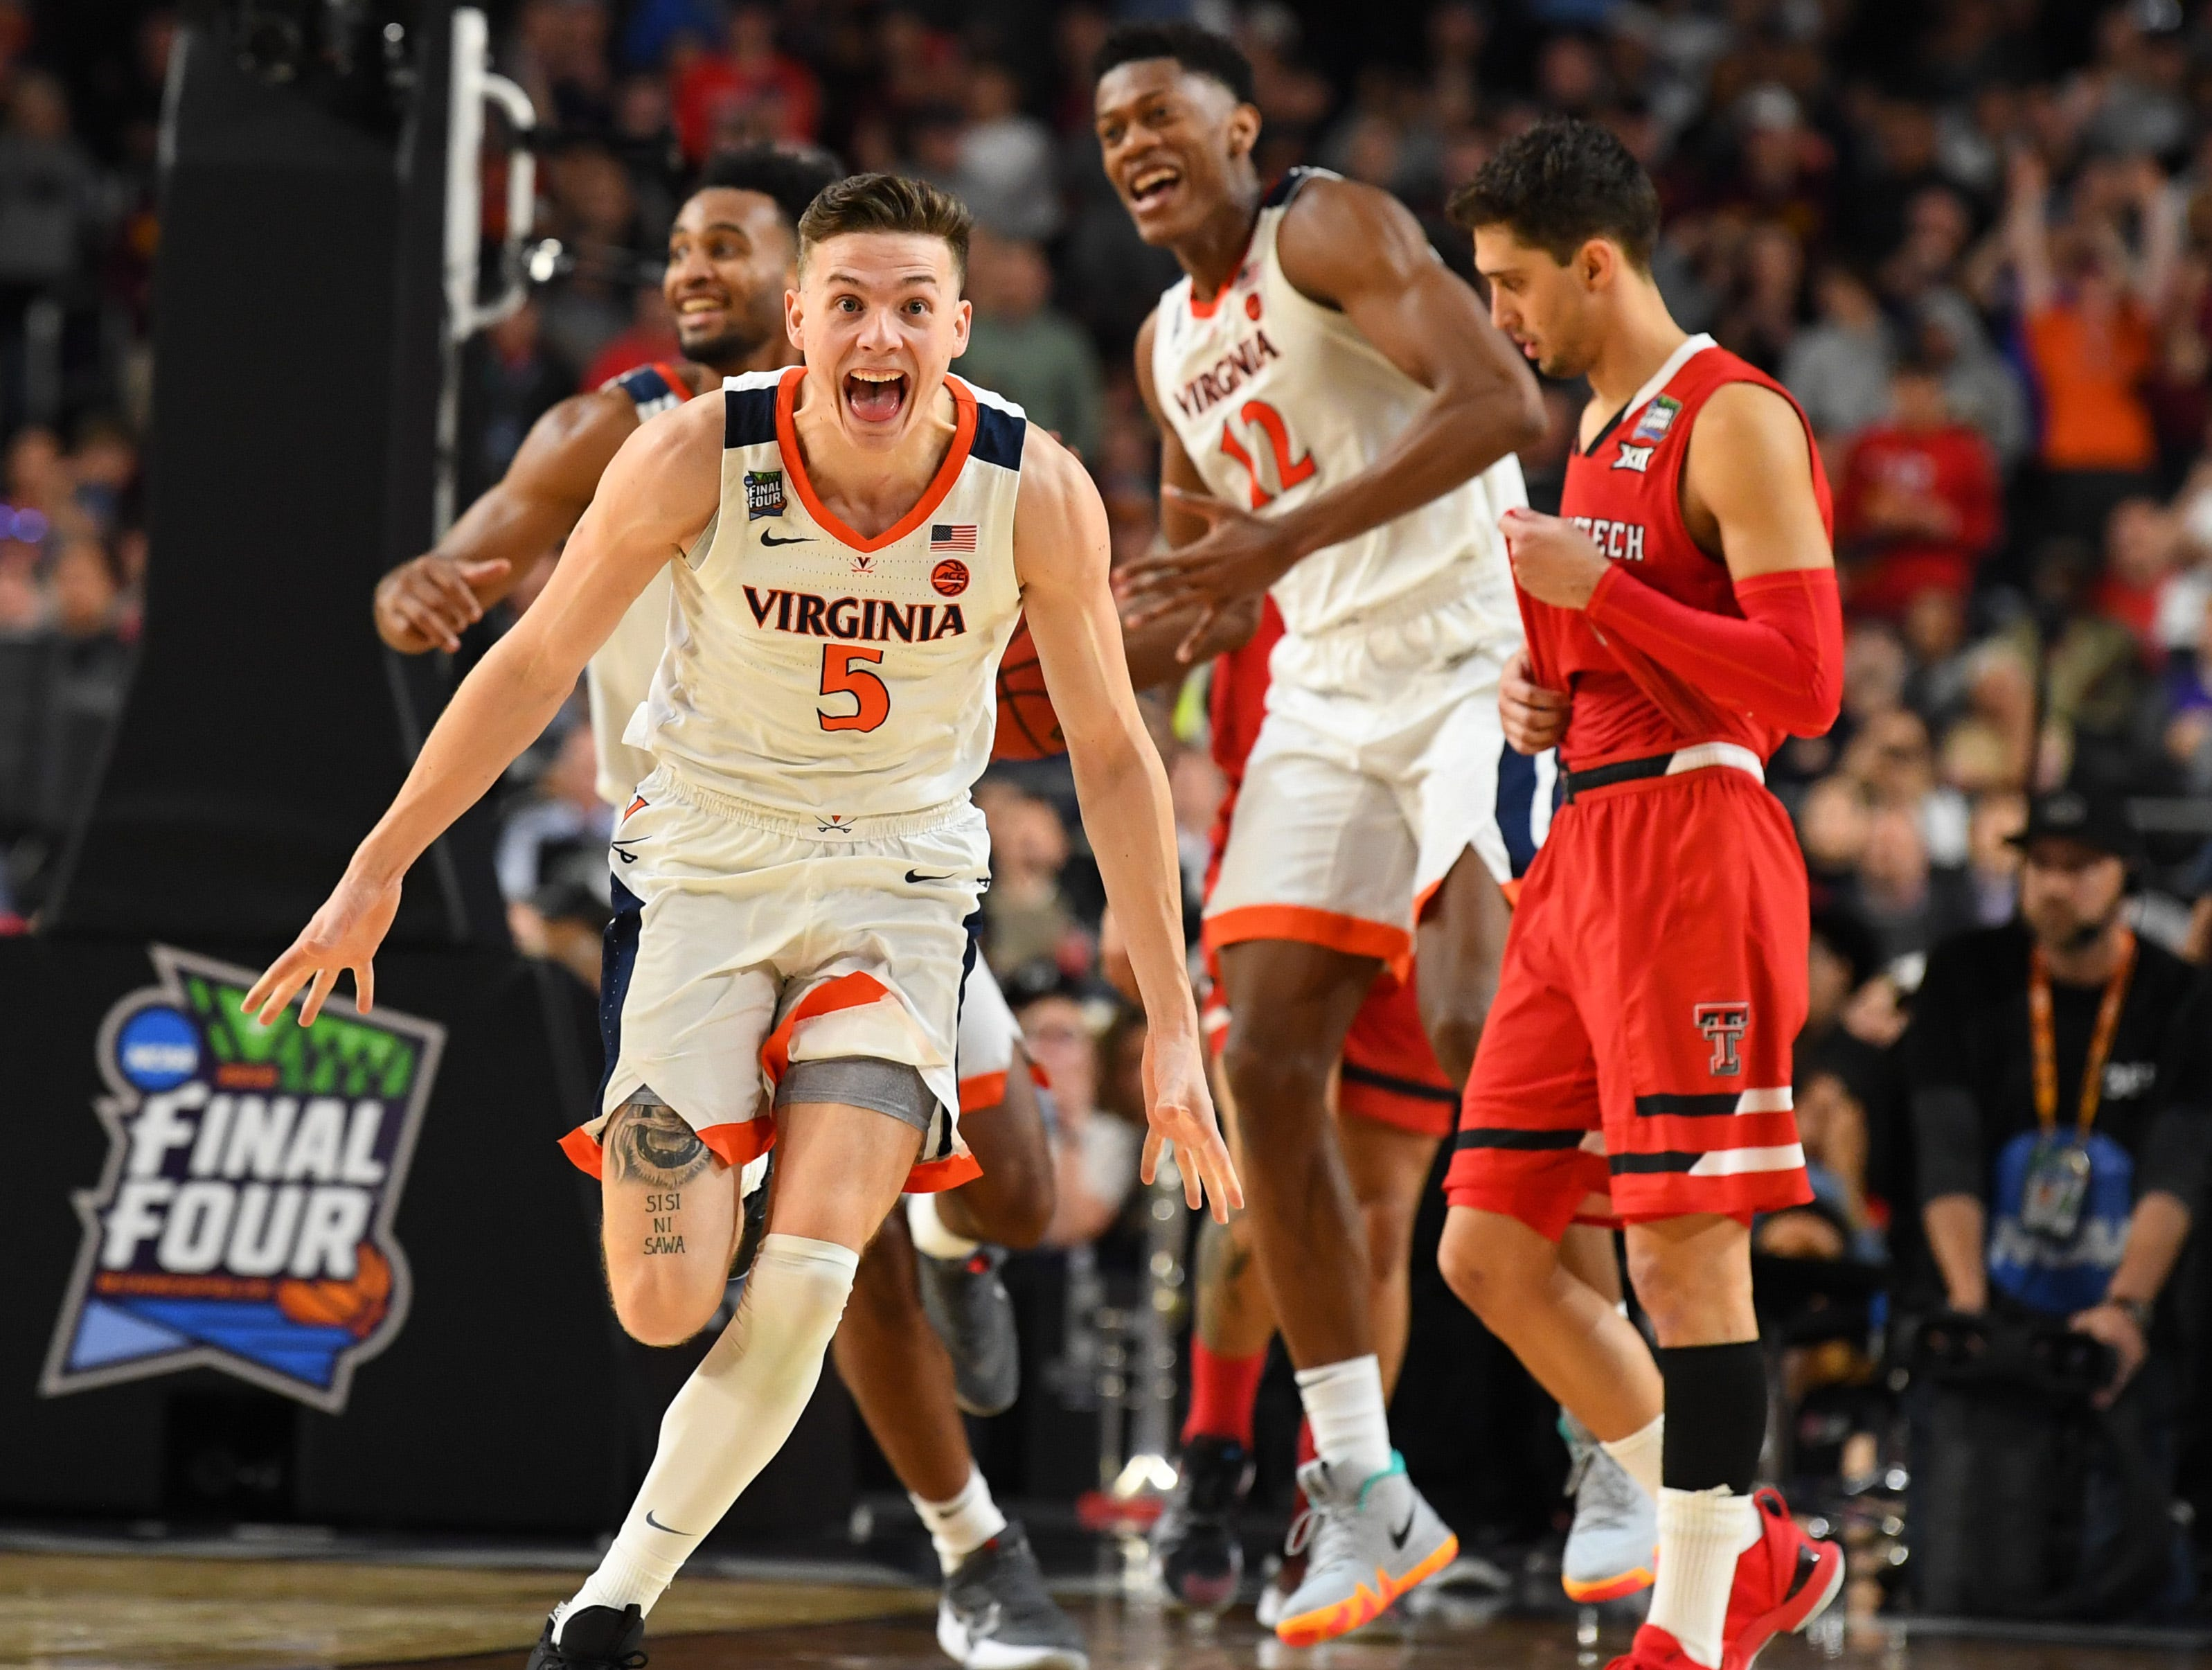 Apr 8, 2019; Minneapolis, MN, USA; Virginia Cavaliers guard Kyle Guy (5) celebrate winning the game over the Texas Tech Red Raiders in overtime in the championship game of the 2019 men's Final Four at US Bank Stadium. Mandatory Credit: Robert Deutsch-USA TODAY Sports